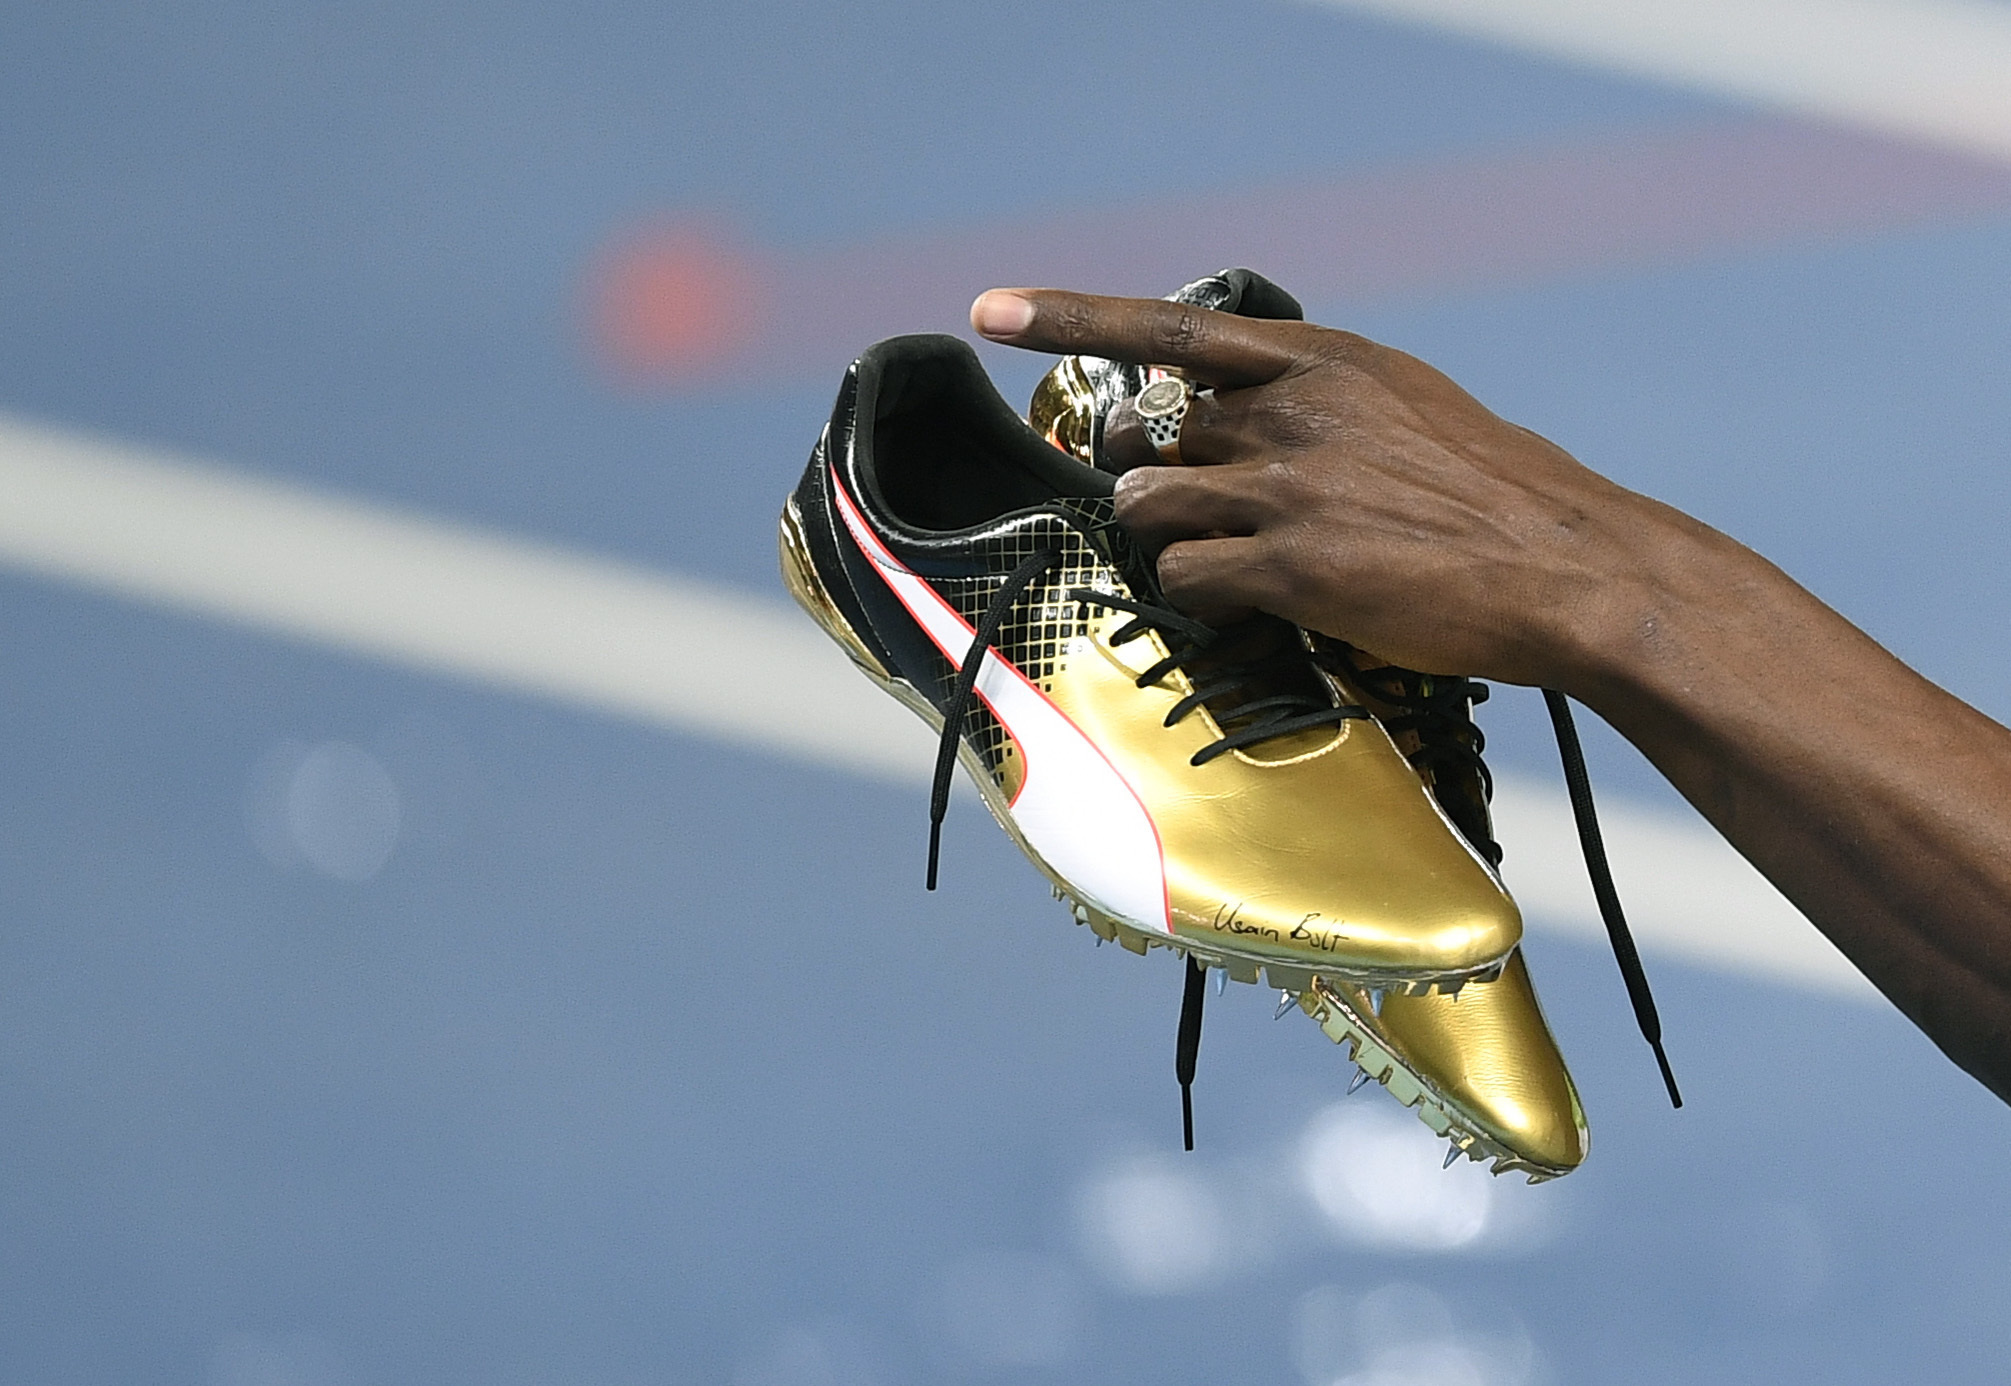 Jamaica's Usain Bolt holds up his shoes after winning the men's 100-meter final during on Sunday at the 2016 Summer Olympics in Rio de Janeiro.   AP